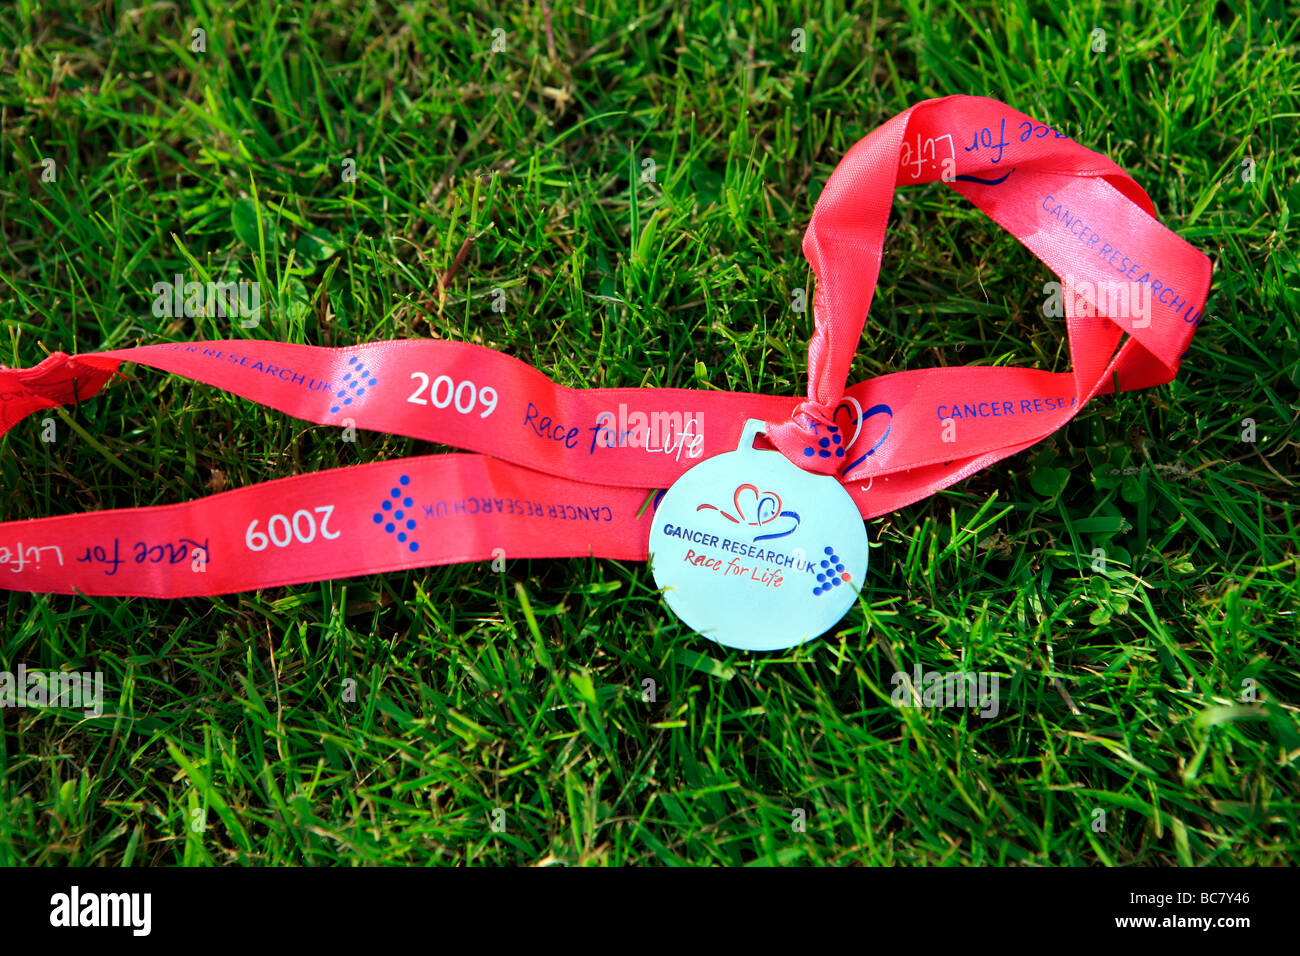 Race for life medal lying on grass - Stock Image